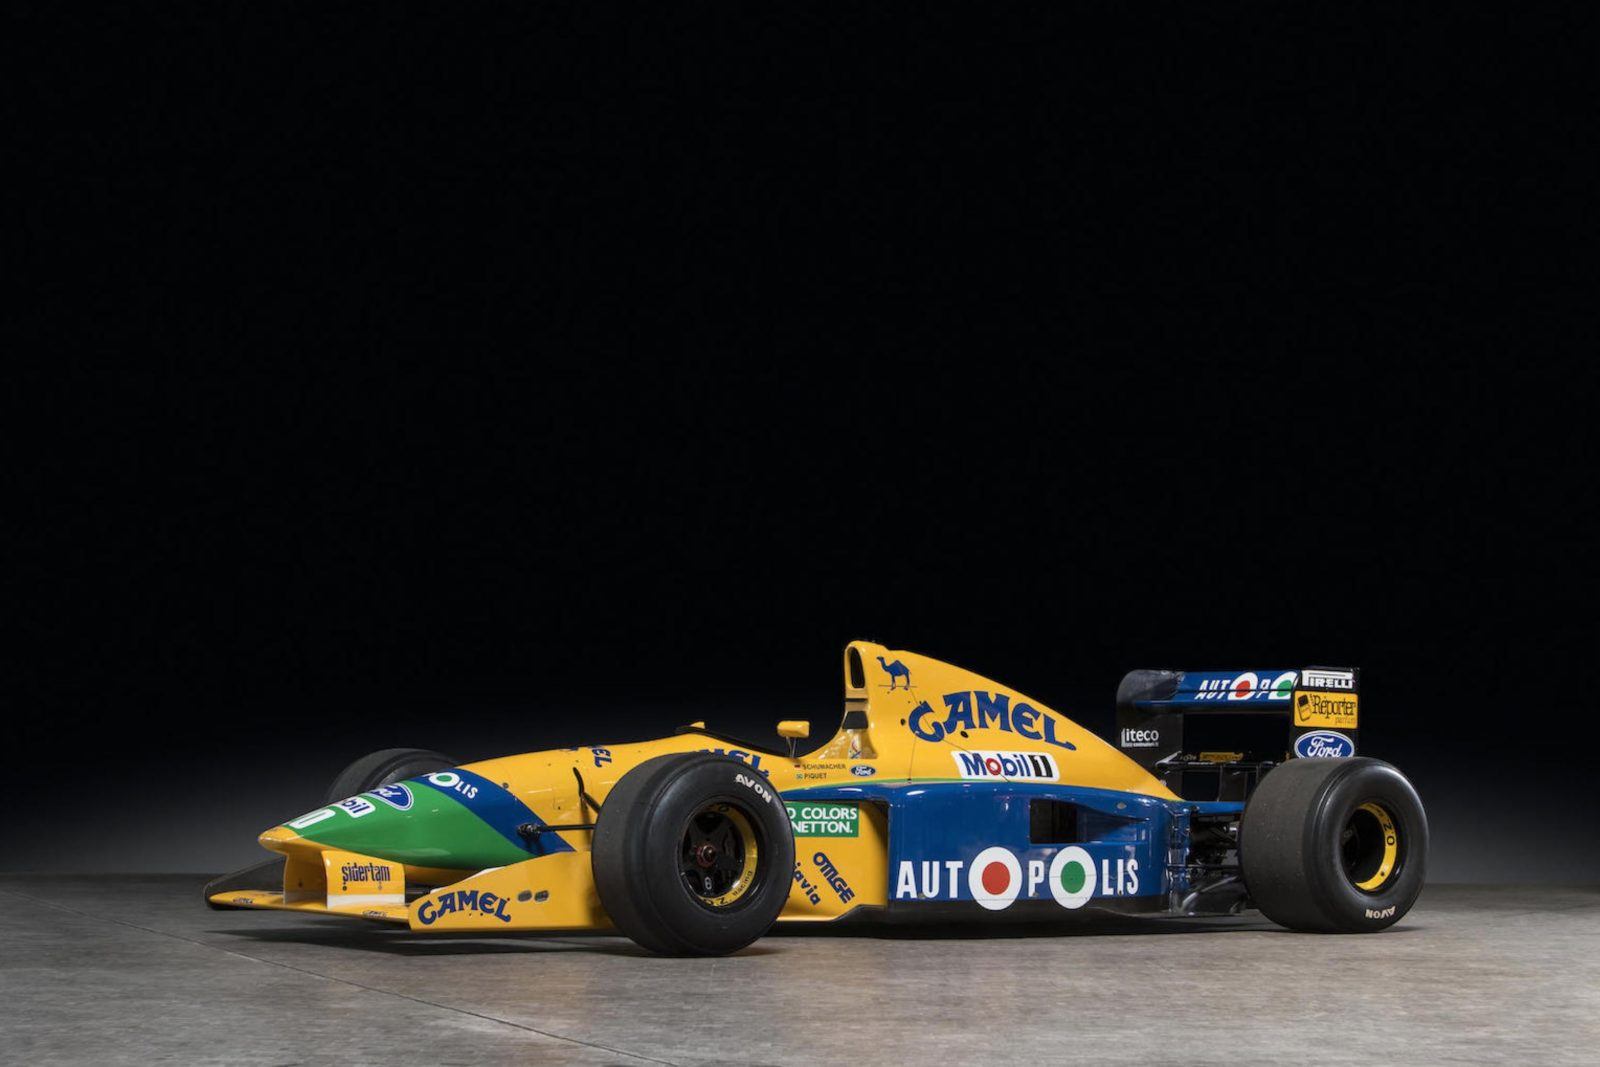 Michael Schumacher 1991 Benetton Formula 1 Car 1600x1067 - Ex-Michael Schumacher 1991 Benetton F1 Car